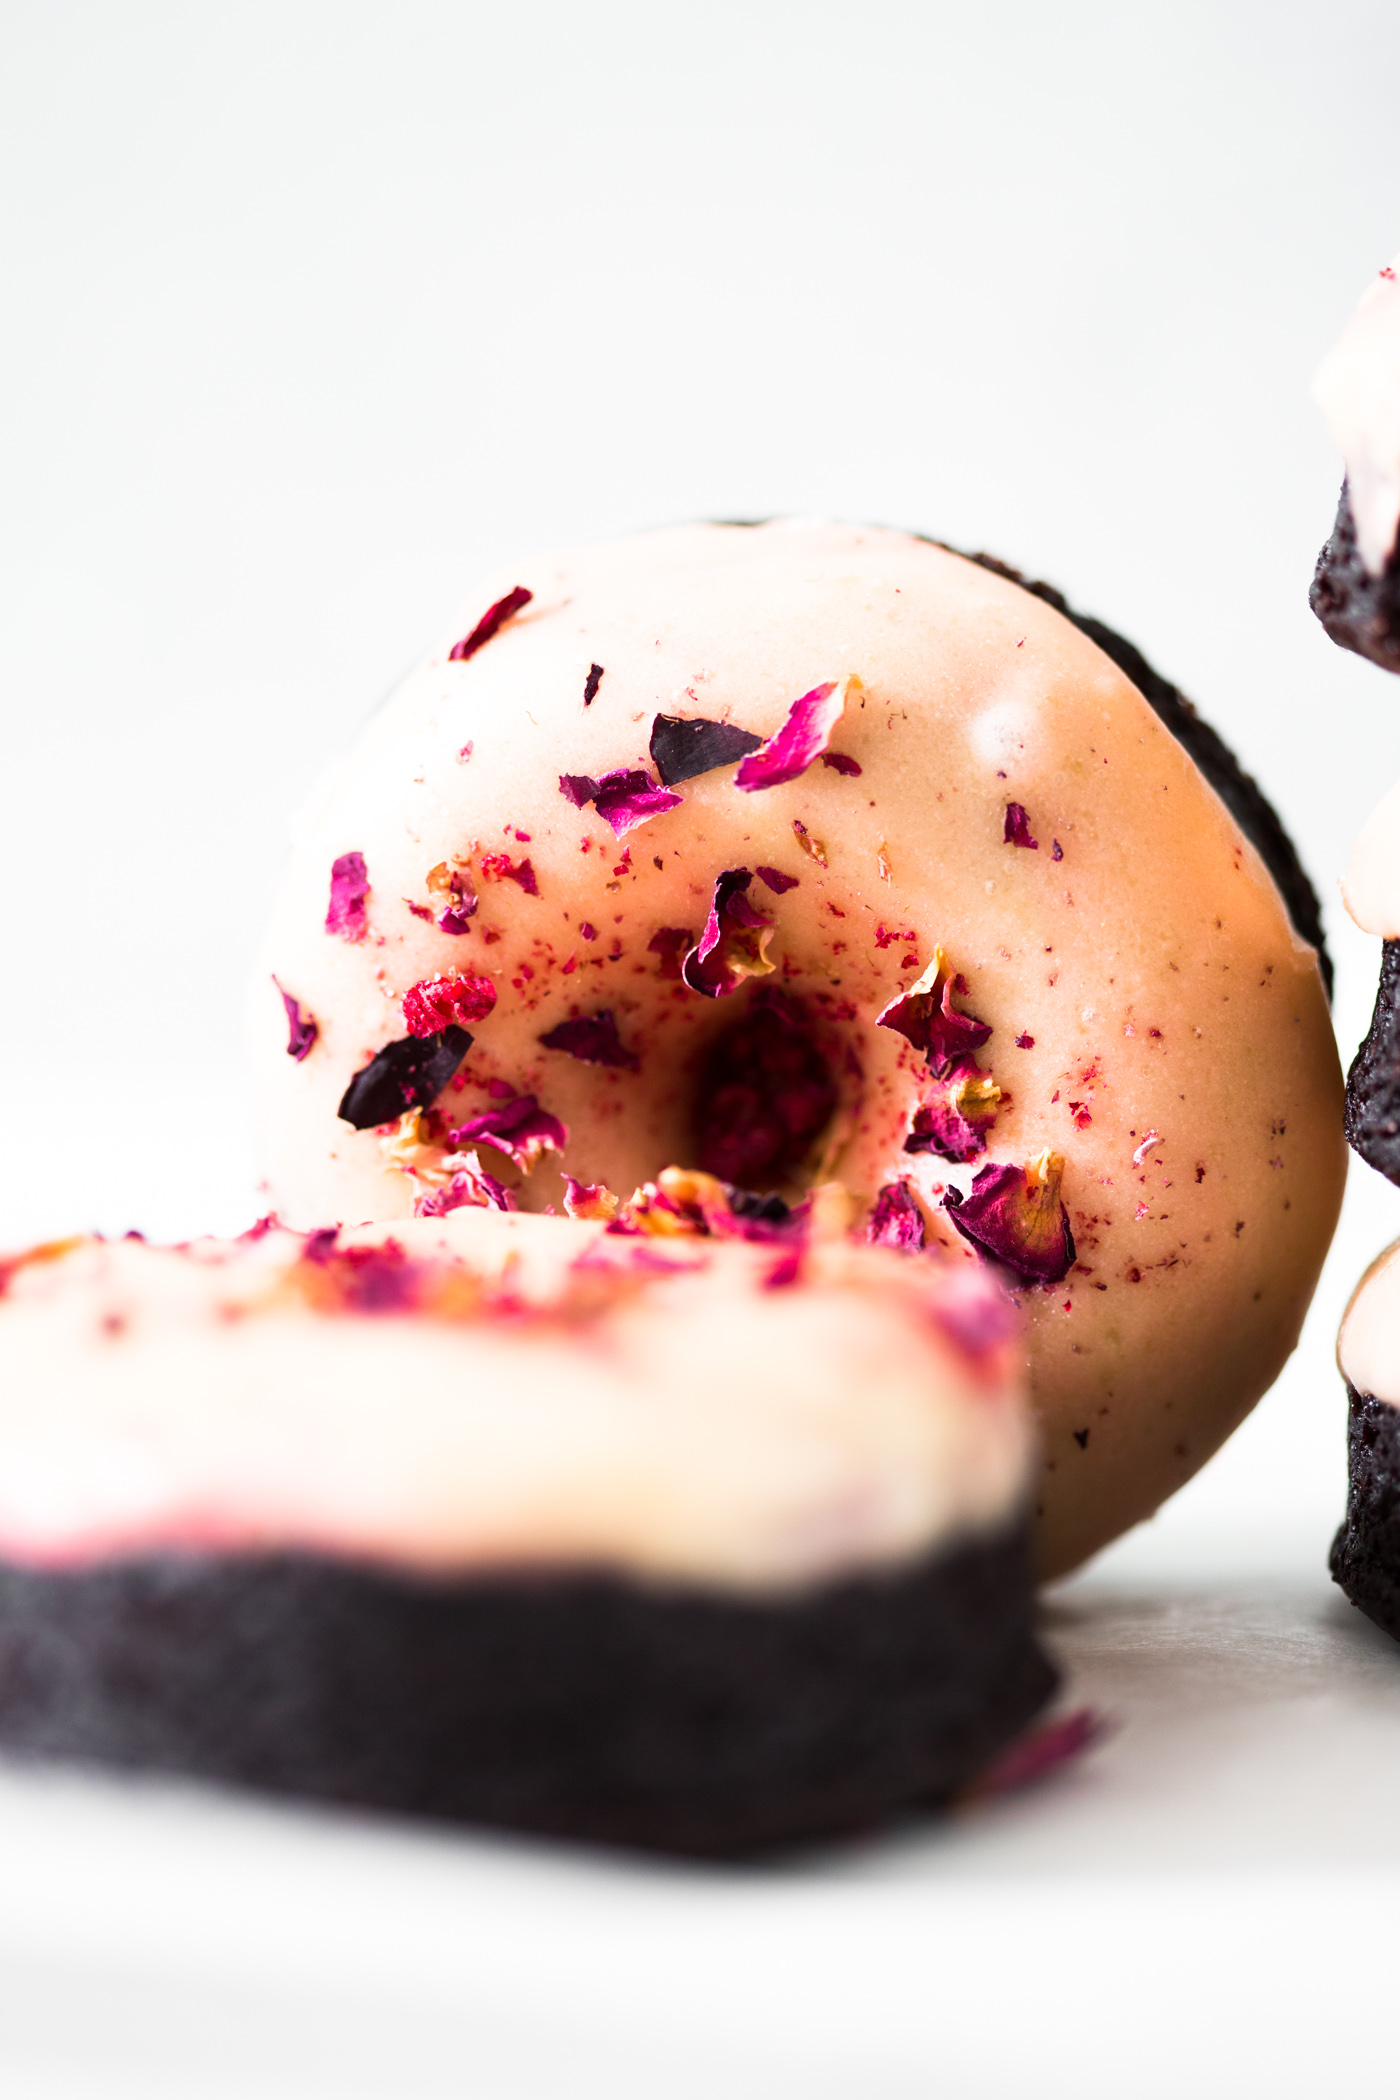 Moist and delicious Vegan Baked Chocolate Donuts topped with a floral Rose Glaze. Easy to make and ready in under 30 minutes. #donuts #vegandonuts #cakedonuts #bakeddonuts #turkishdelight #chocolate #chocolatedonuts #baking #vegetarian #chocolatecake #easy #30minutes